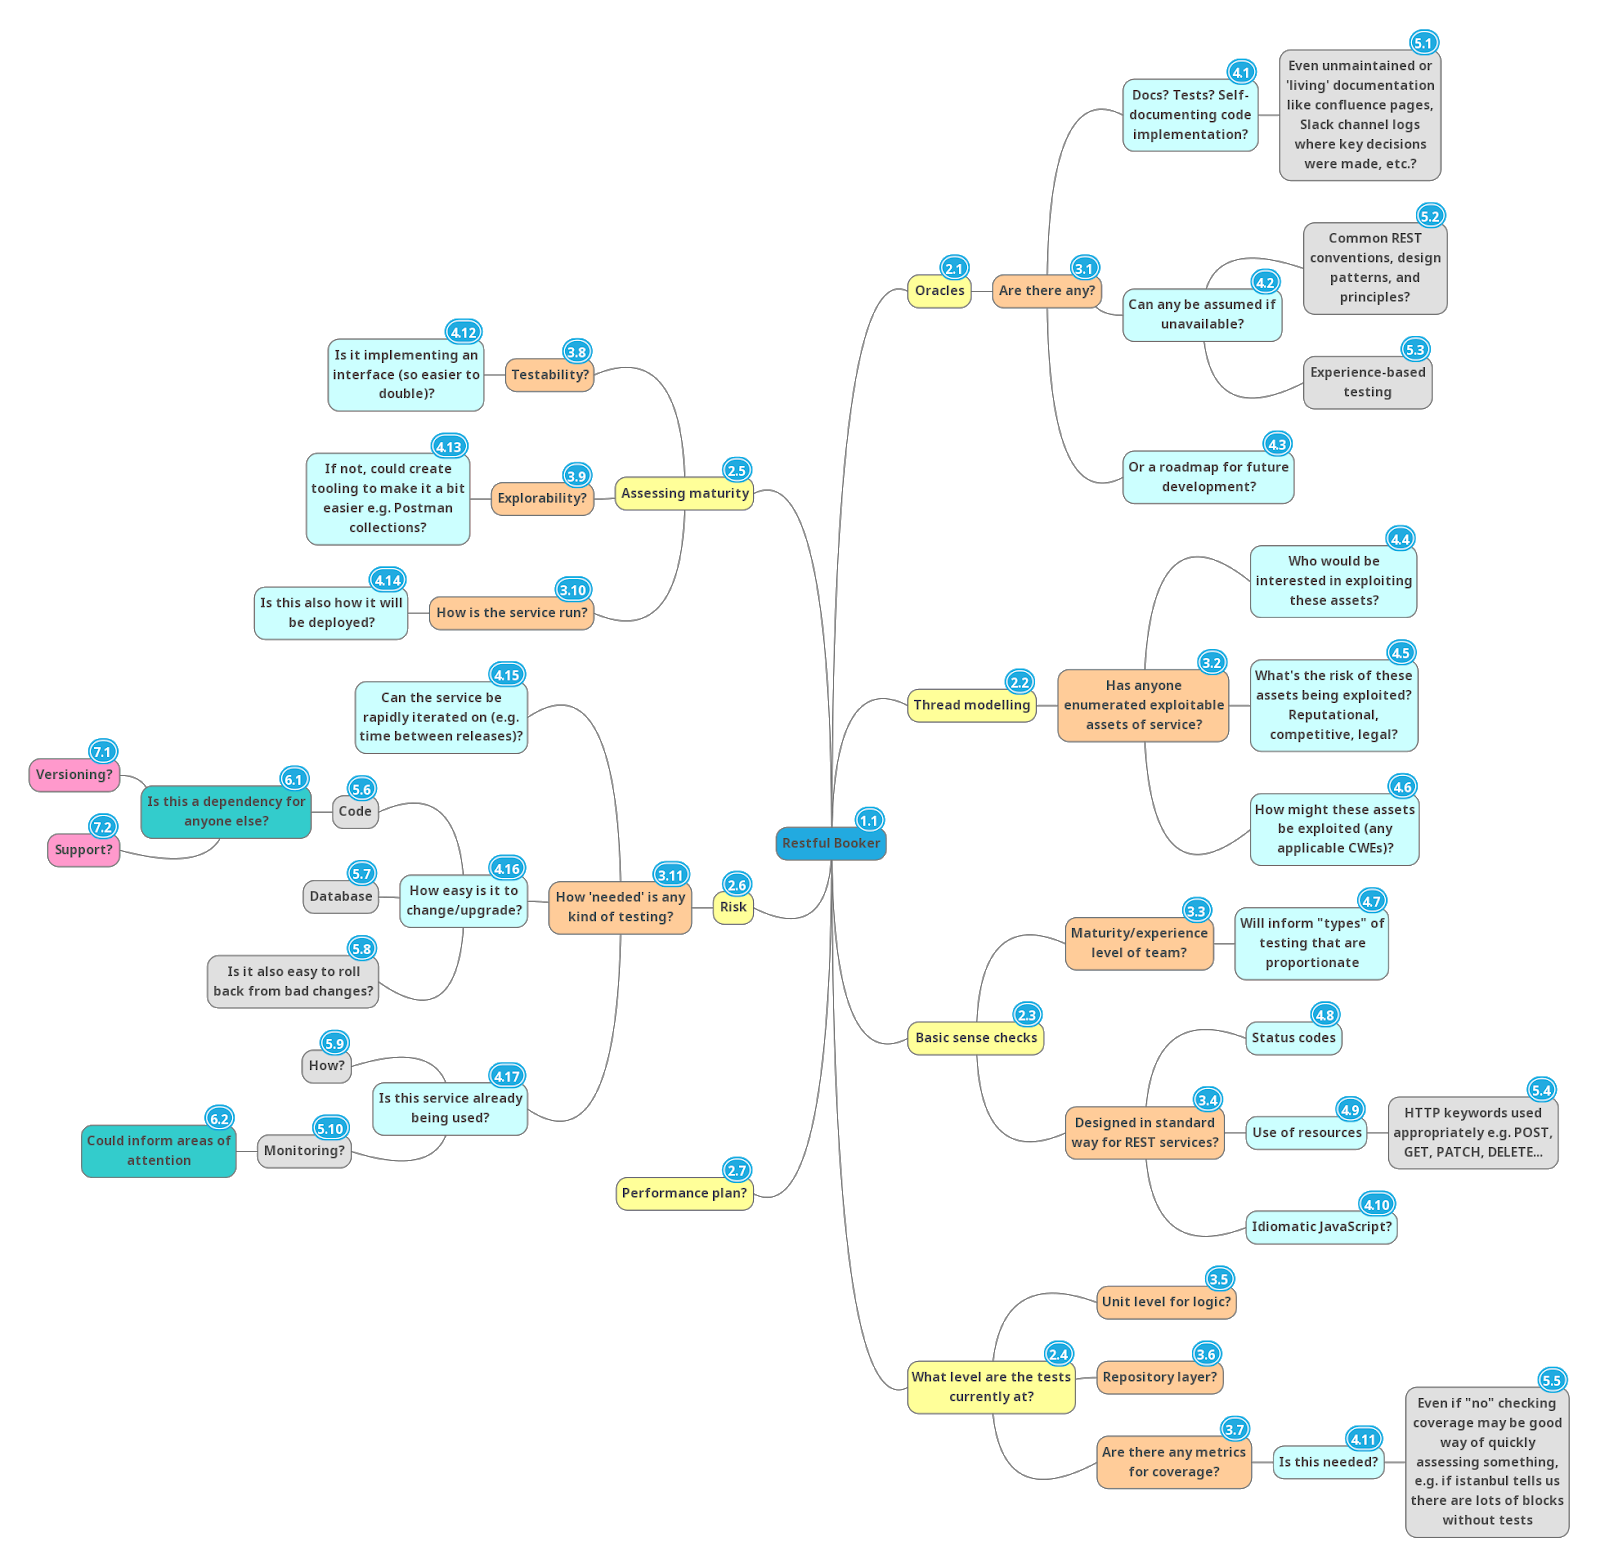 Mind map of test ideation